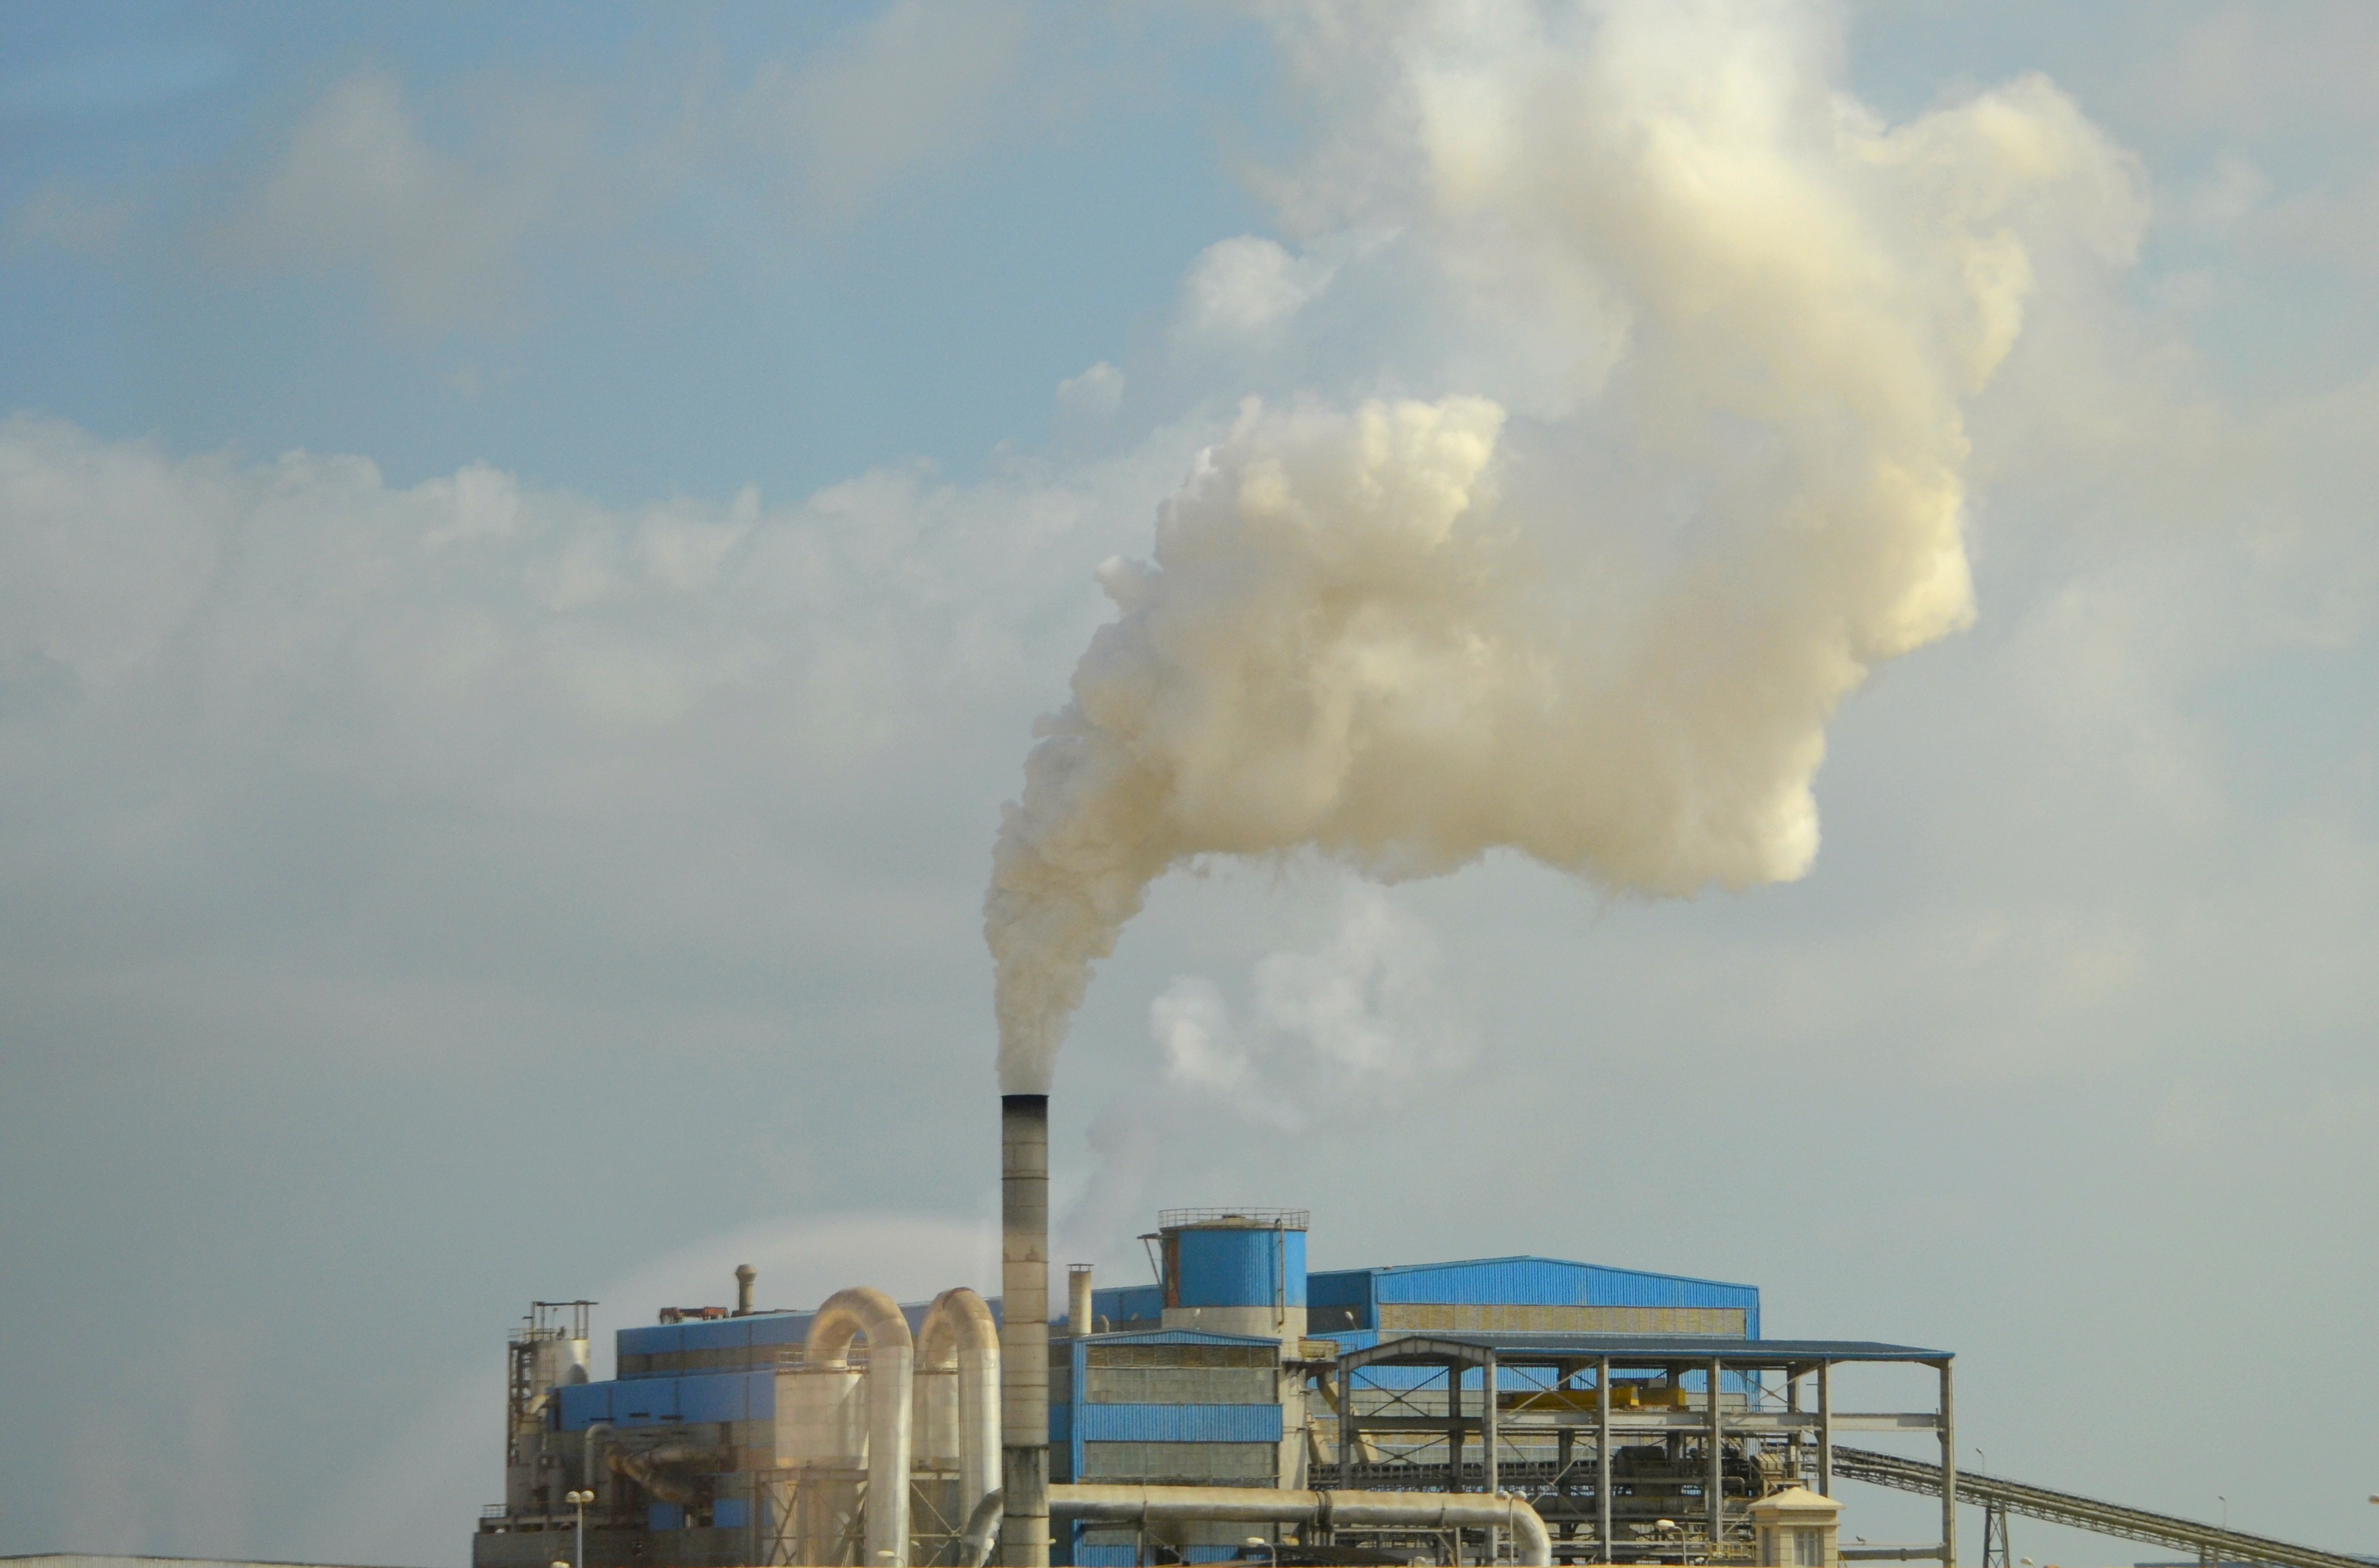 Air pollution and genetics – risks for autism onset according to new research